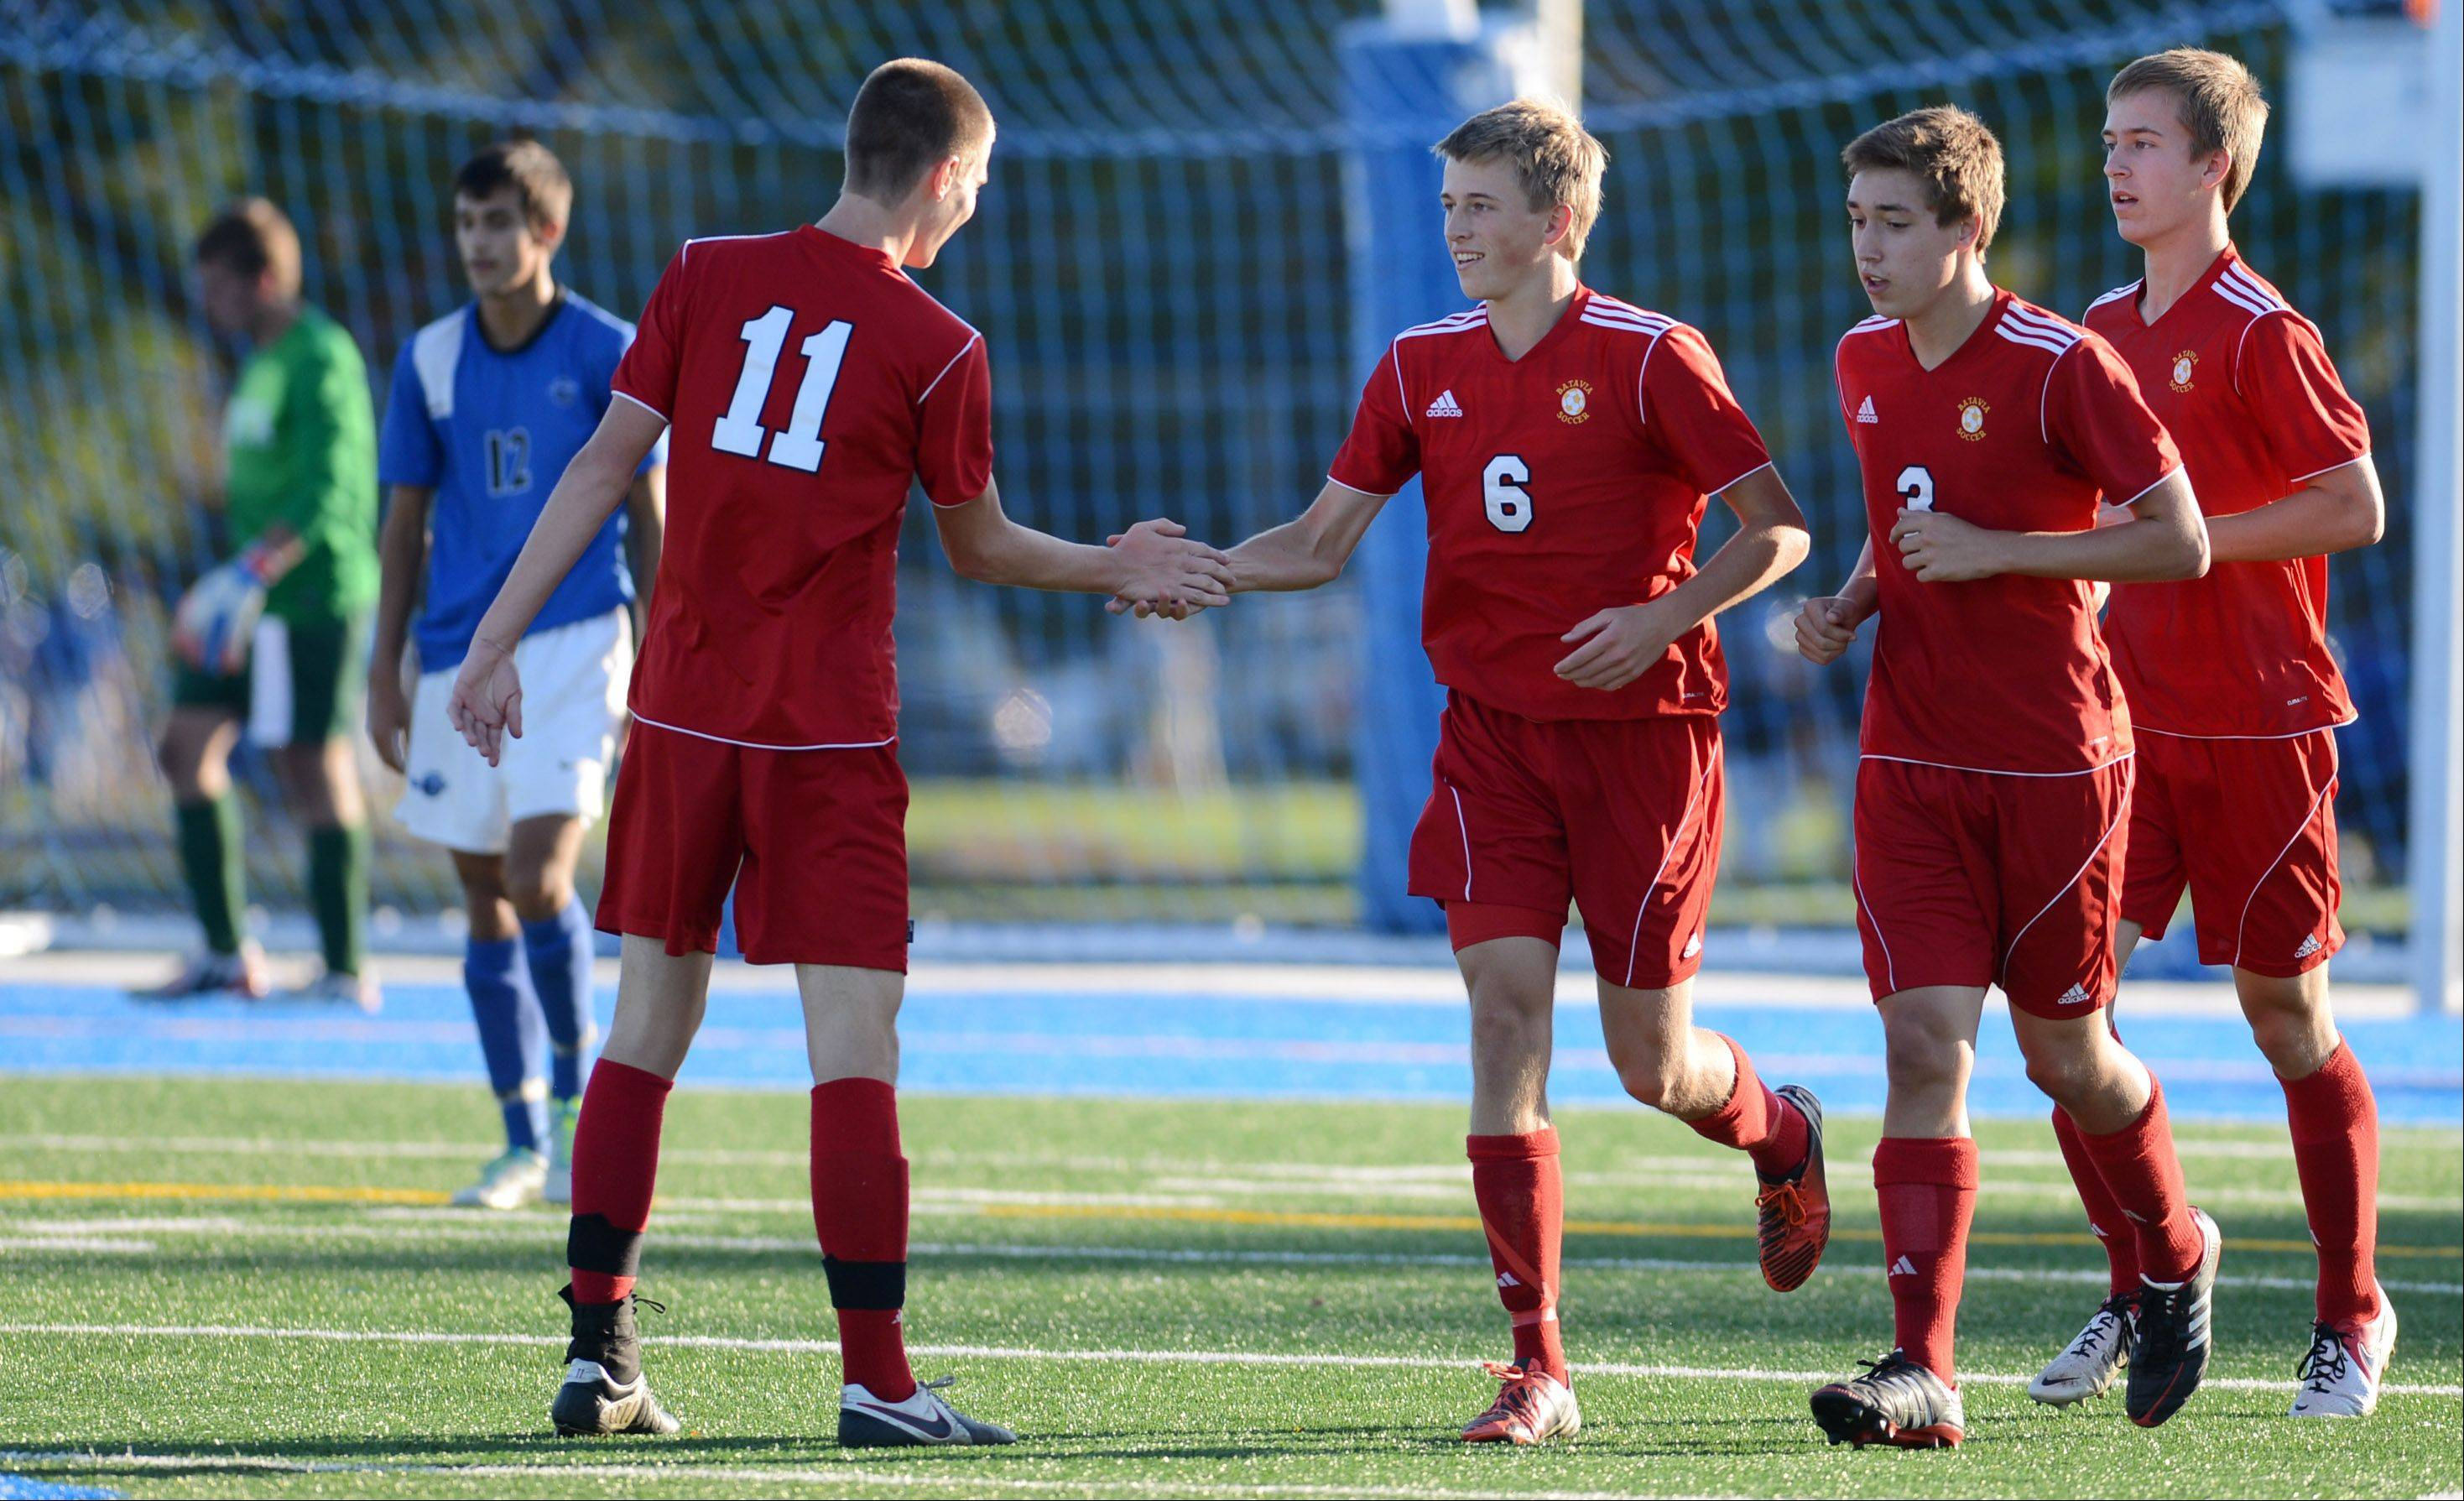 Batavia teammates, including John Barnes (11), congratulate Ian Larson after his goal against St. Charles North during Tuesday's action at the Tri-Cities boys soccer challenge in Geneva.